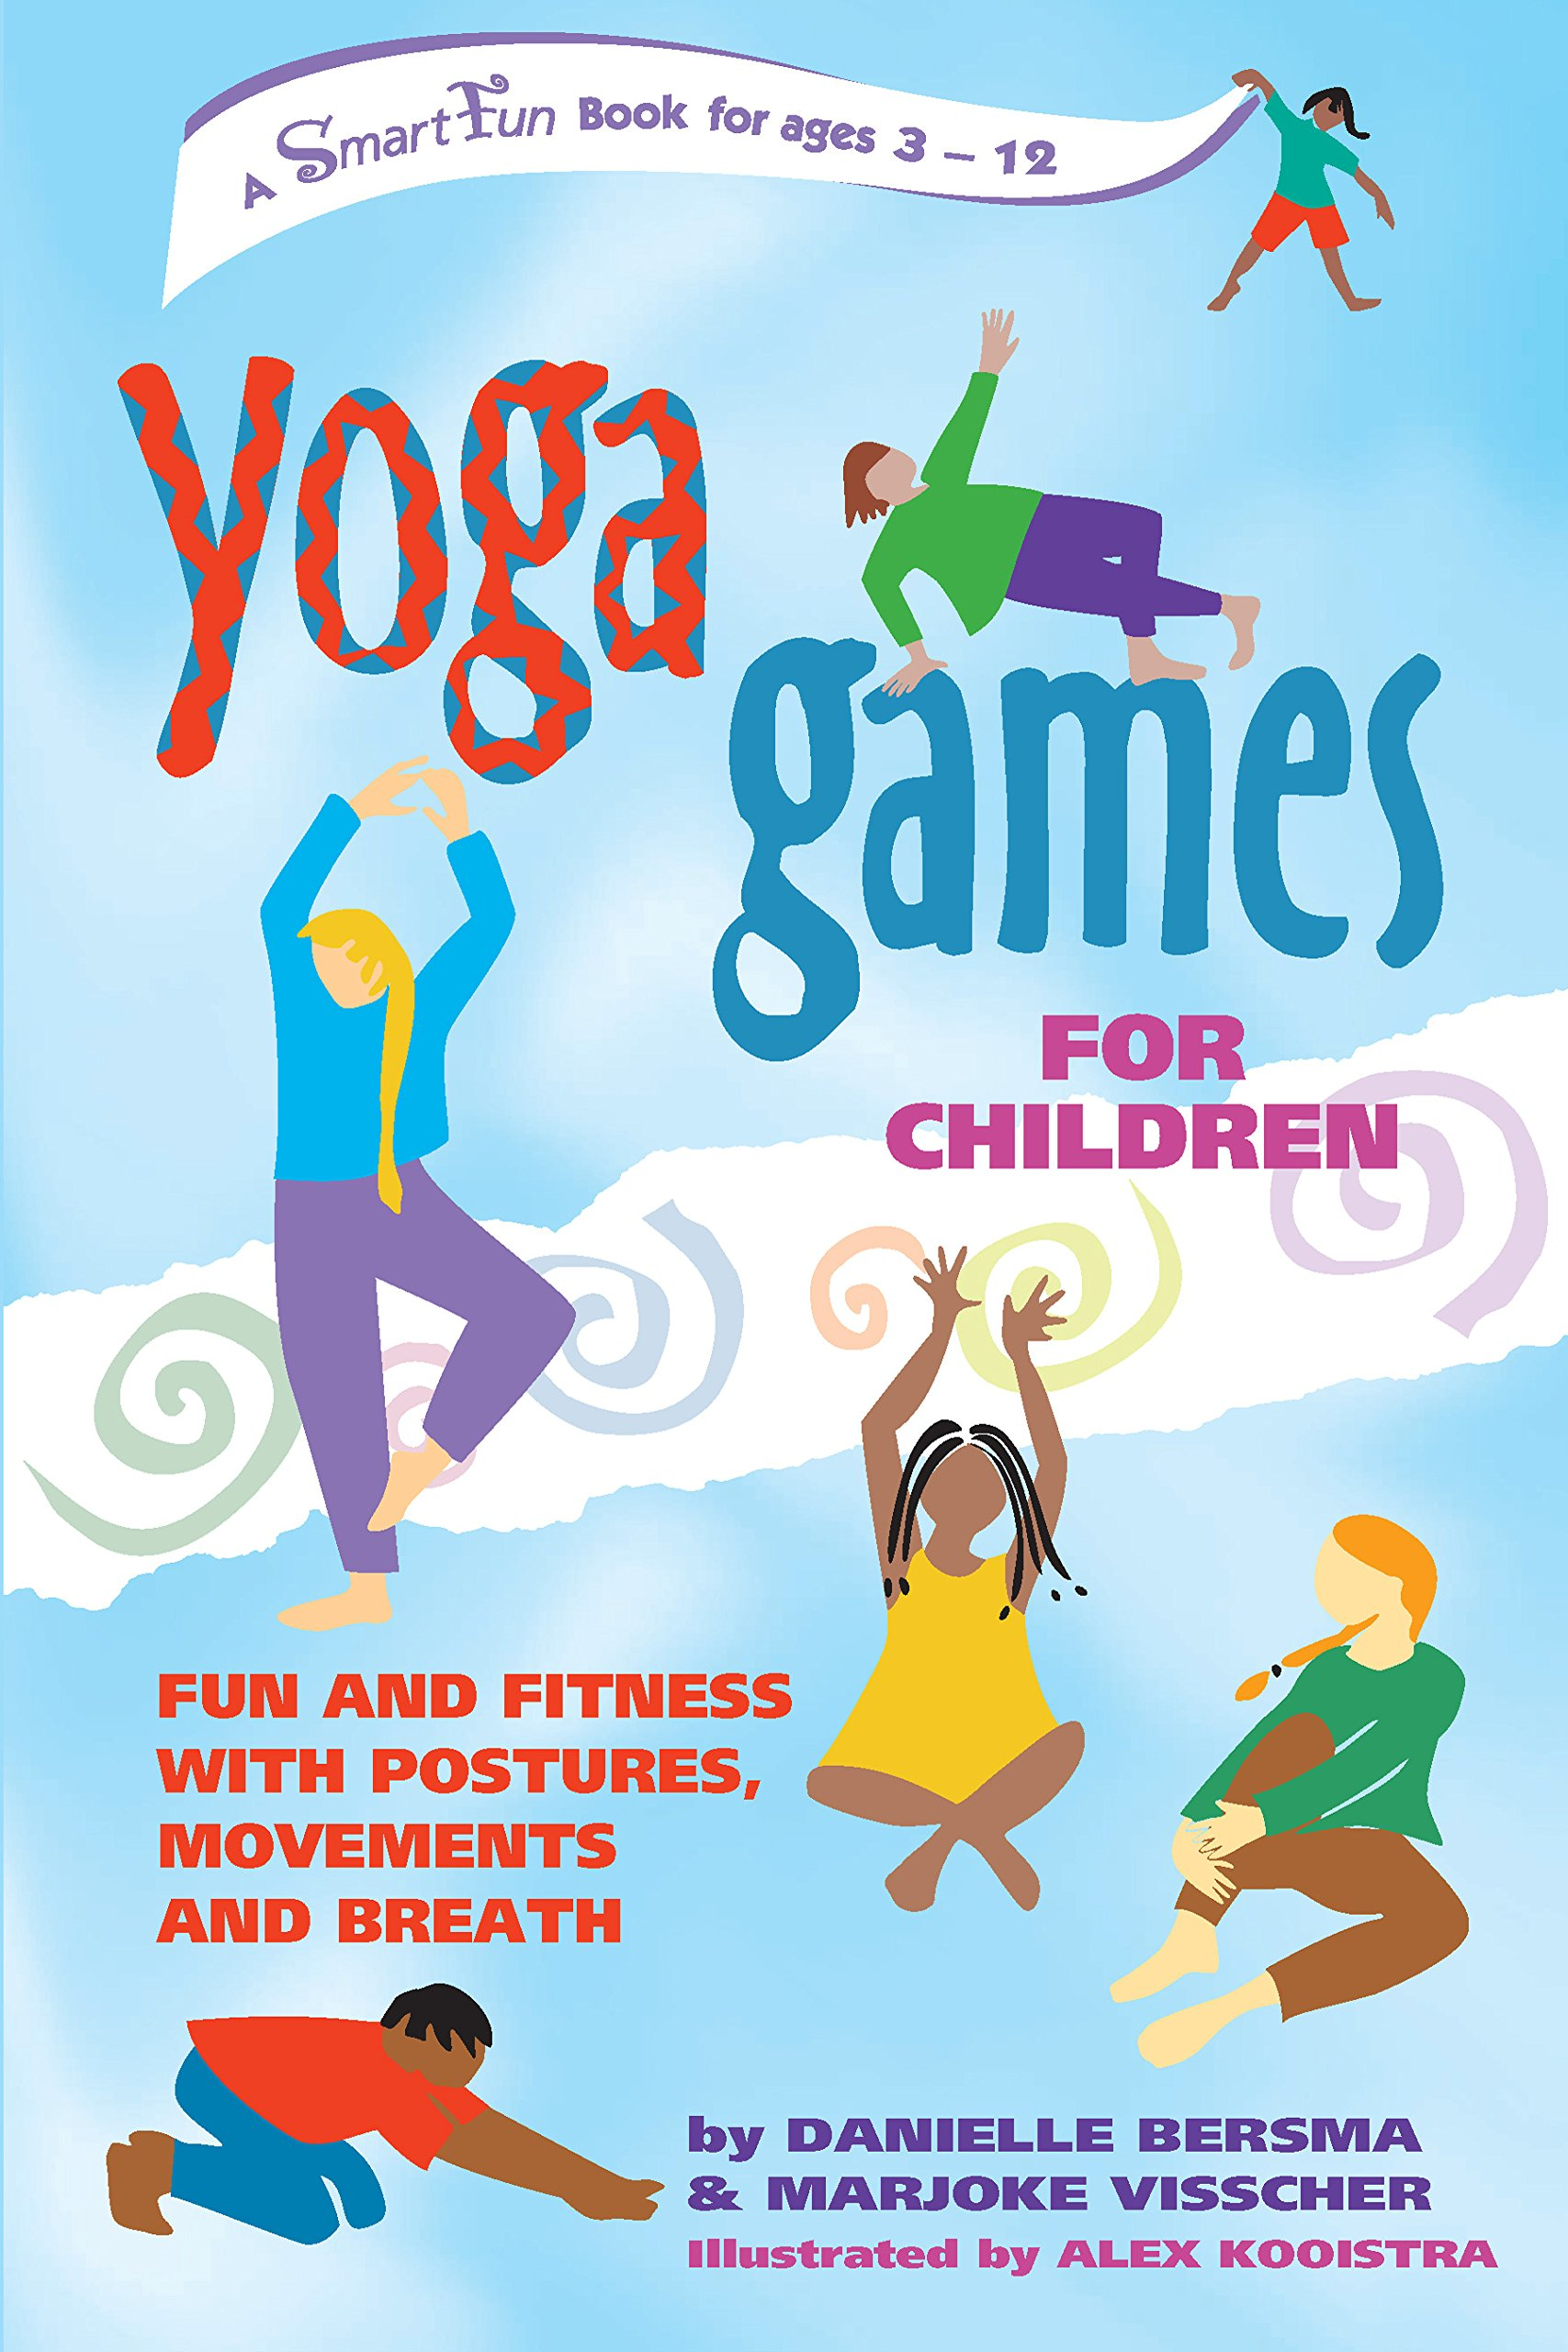 Yoga Games For Children Fun And Fitness With Postures Movements Breath SmartFun Activity Books Danielle Bersma Marjoke Visscher Alex Kooistra